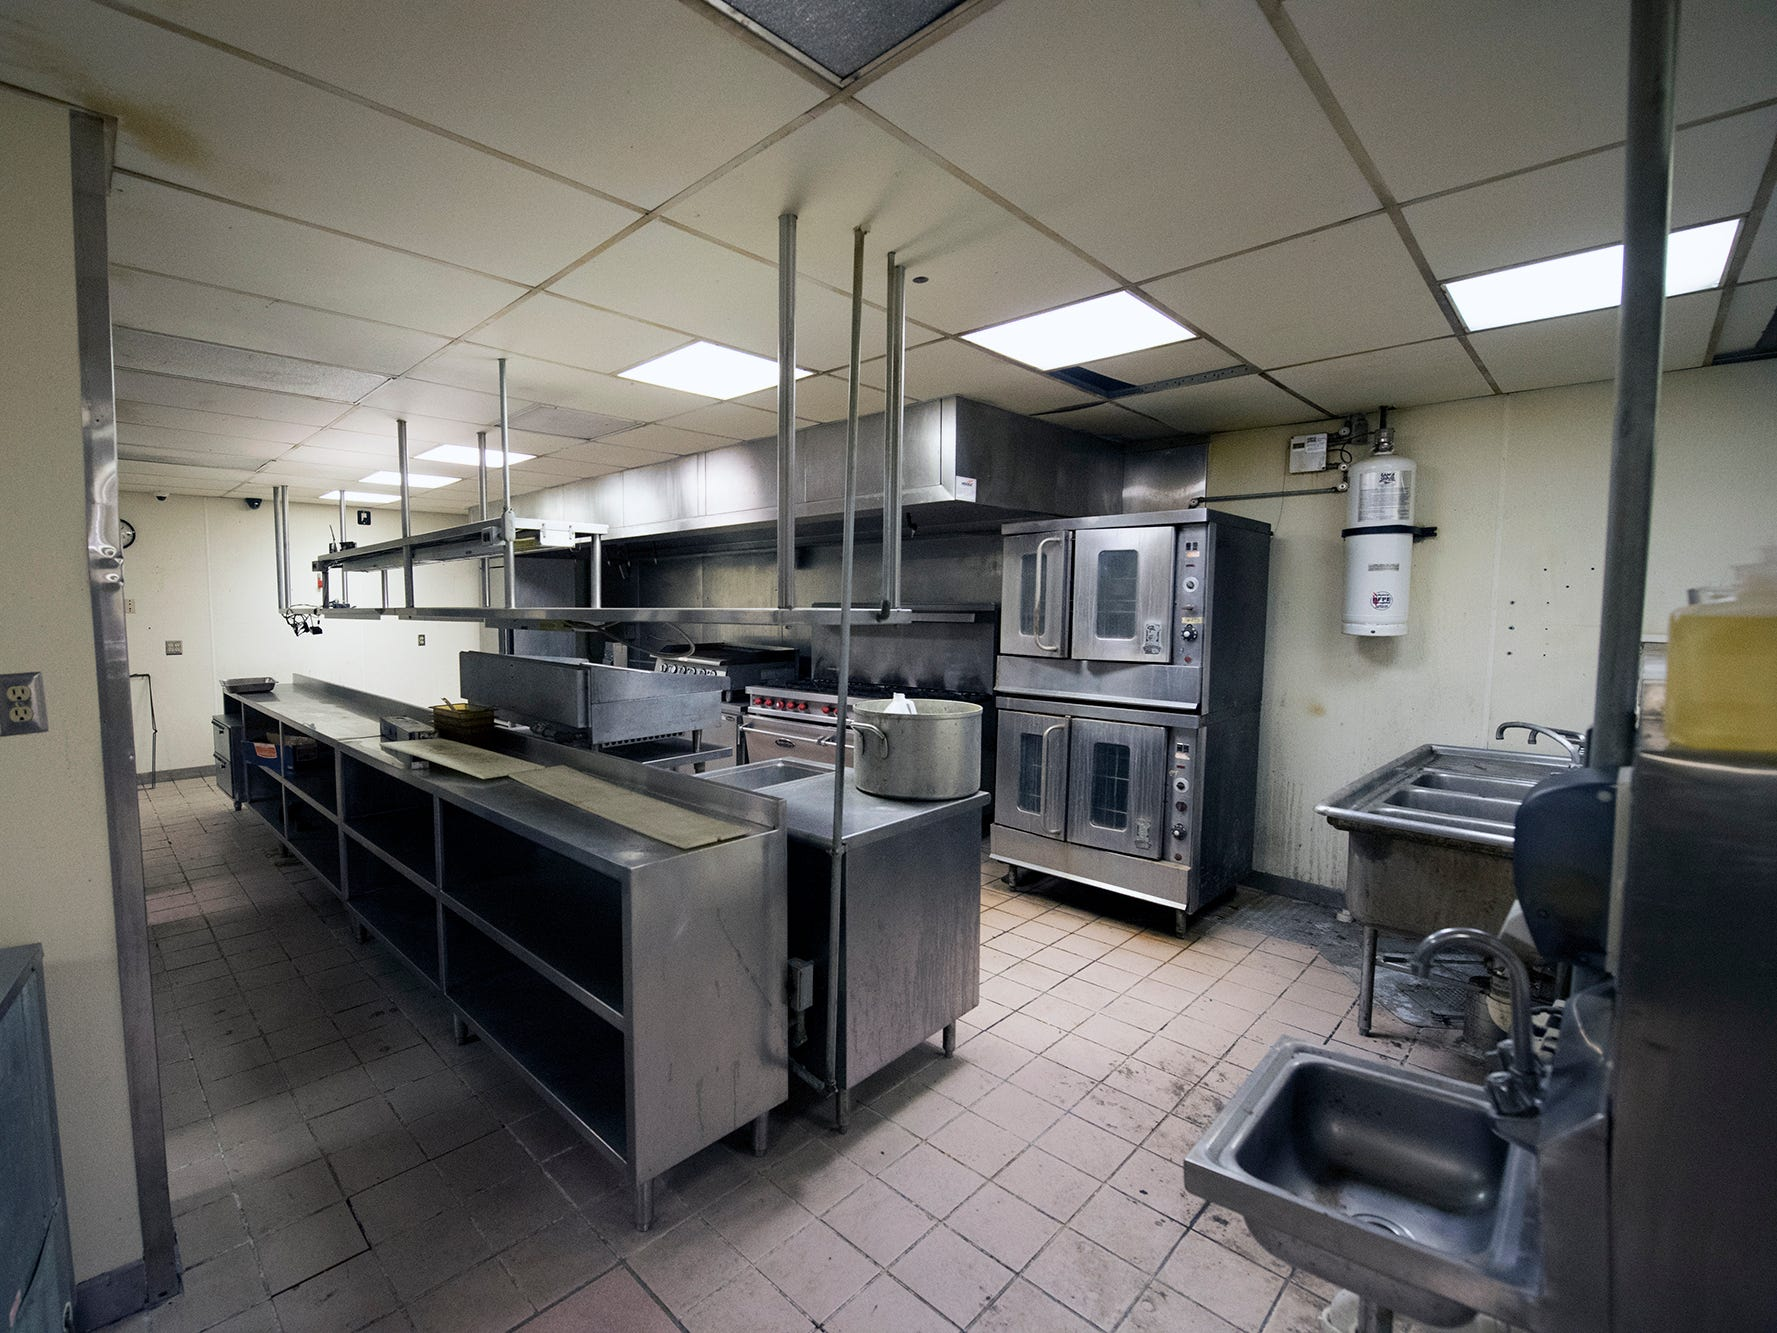 A commercial kitchen on the first floor of the former Cobblestones building Wednesday January, 2019.